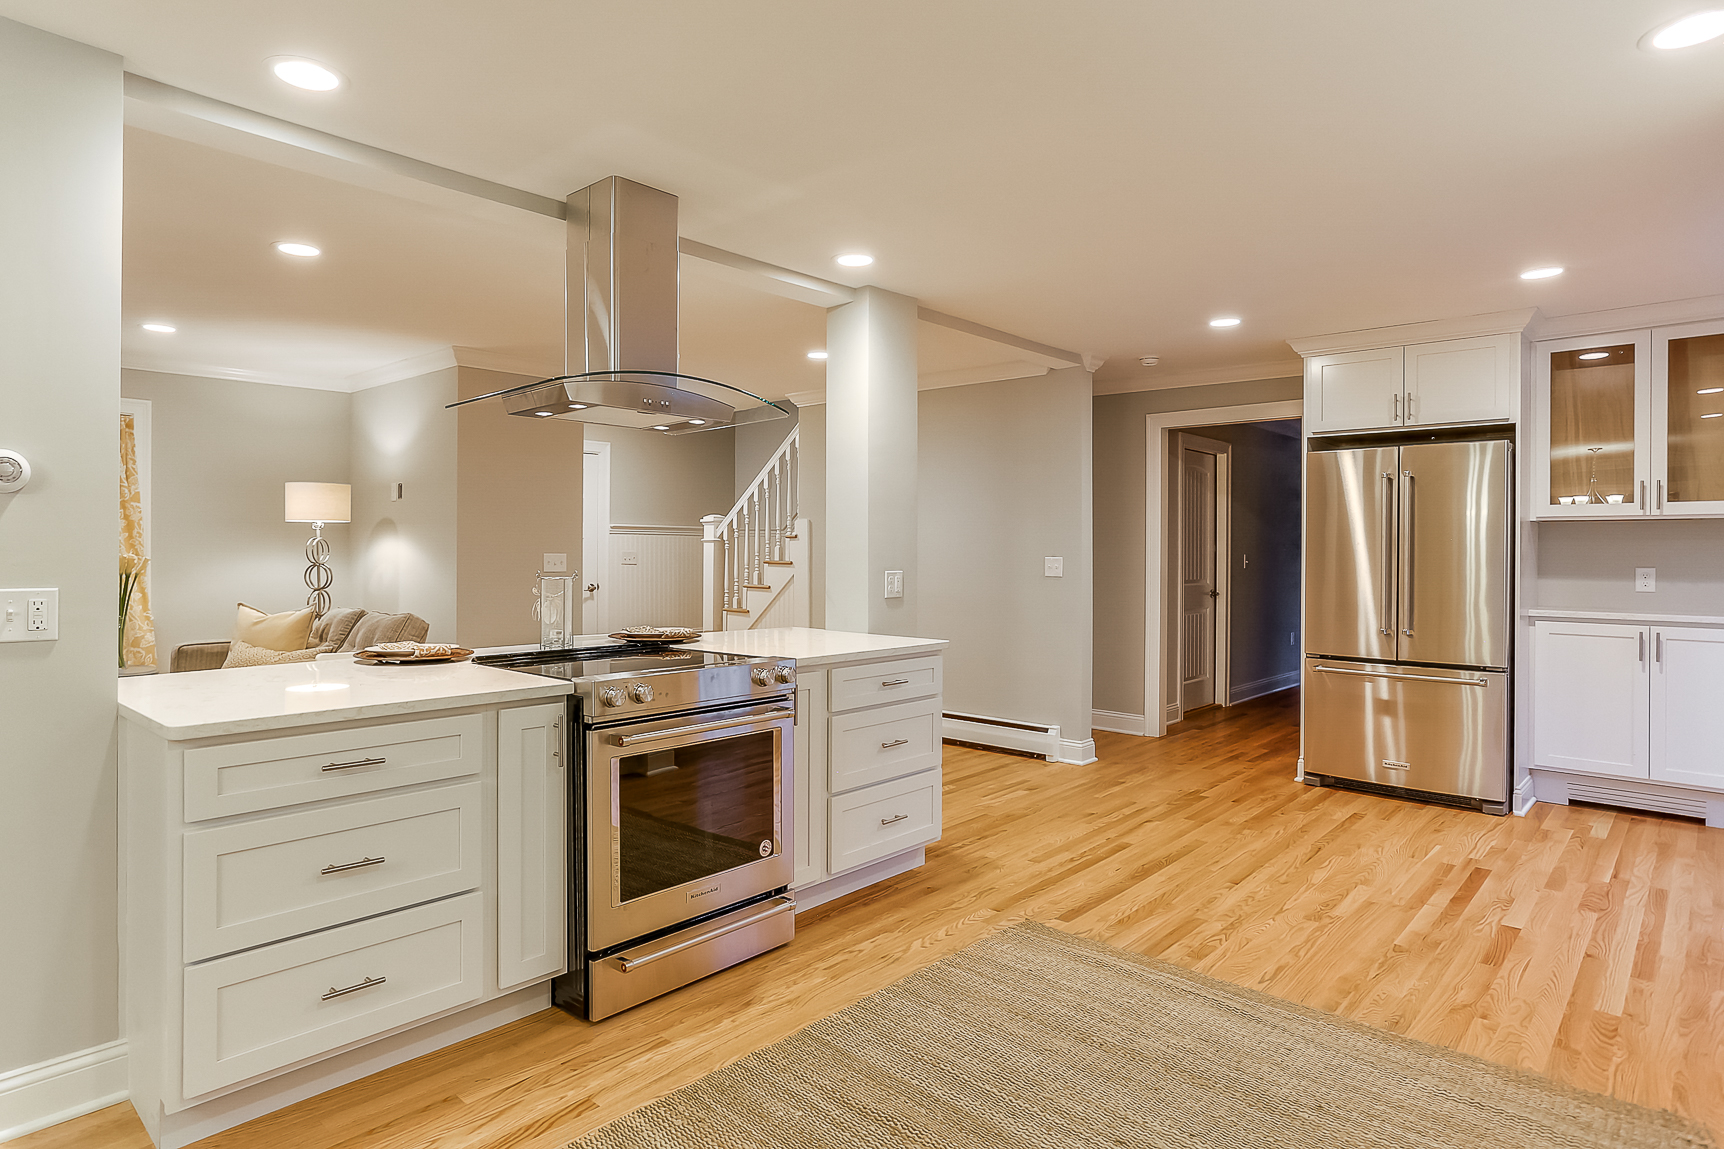 Single Family Home for Sale at Expertly Renovated, Kayak Access 115 River Edge Farms Rd Madison, Connecticut, 06443 United States